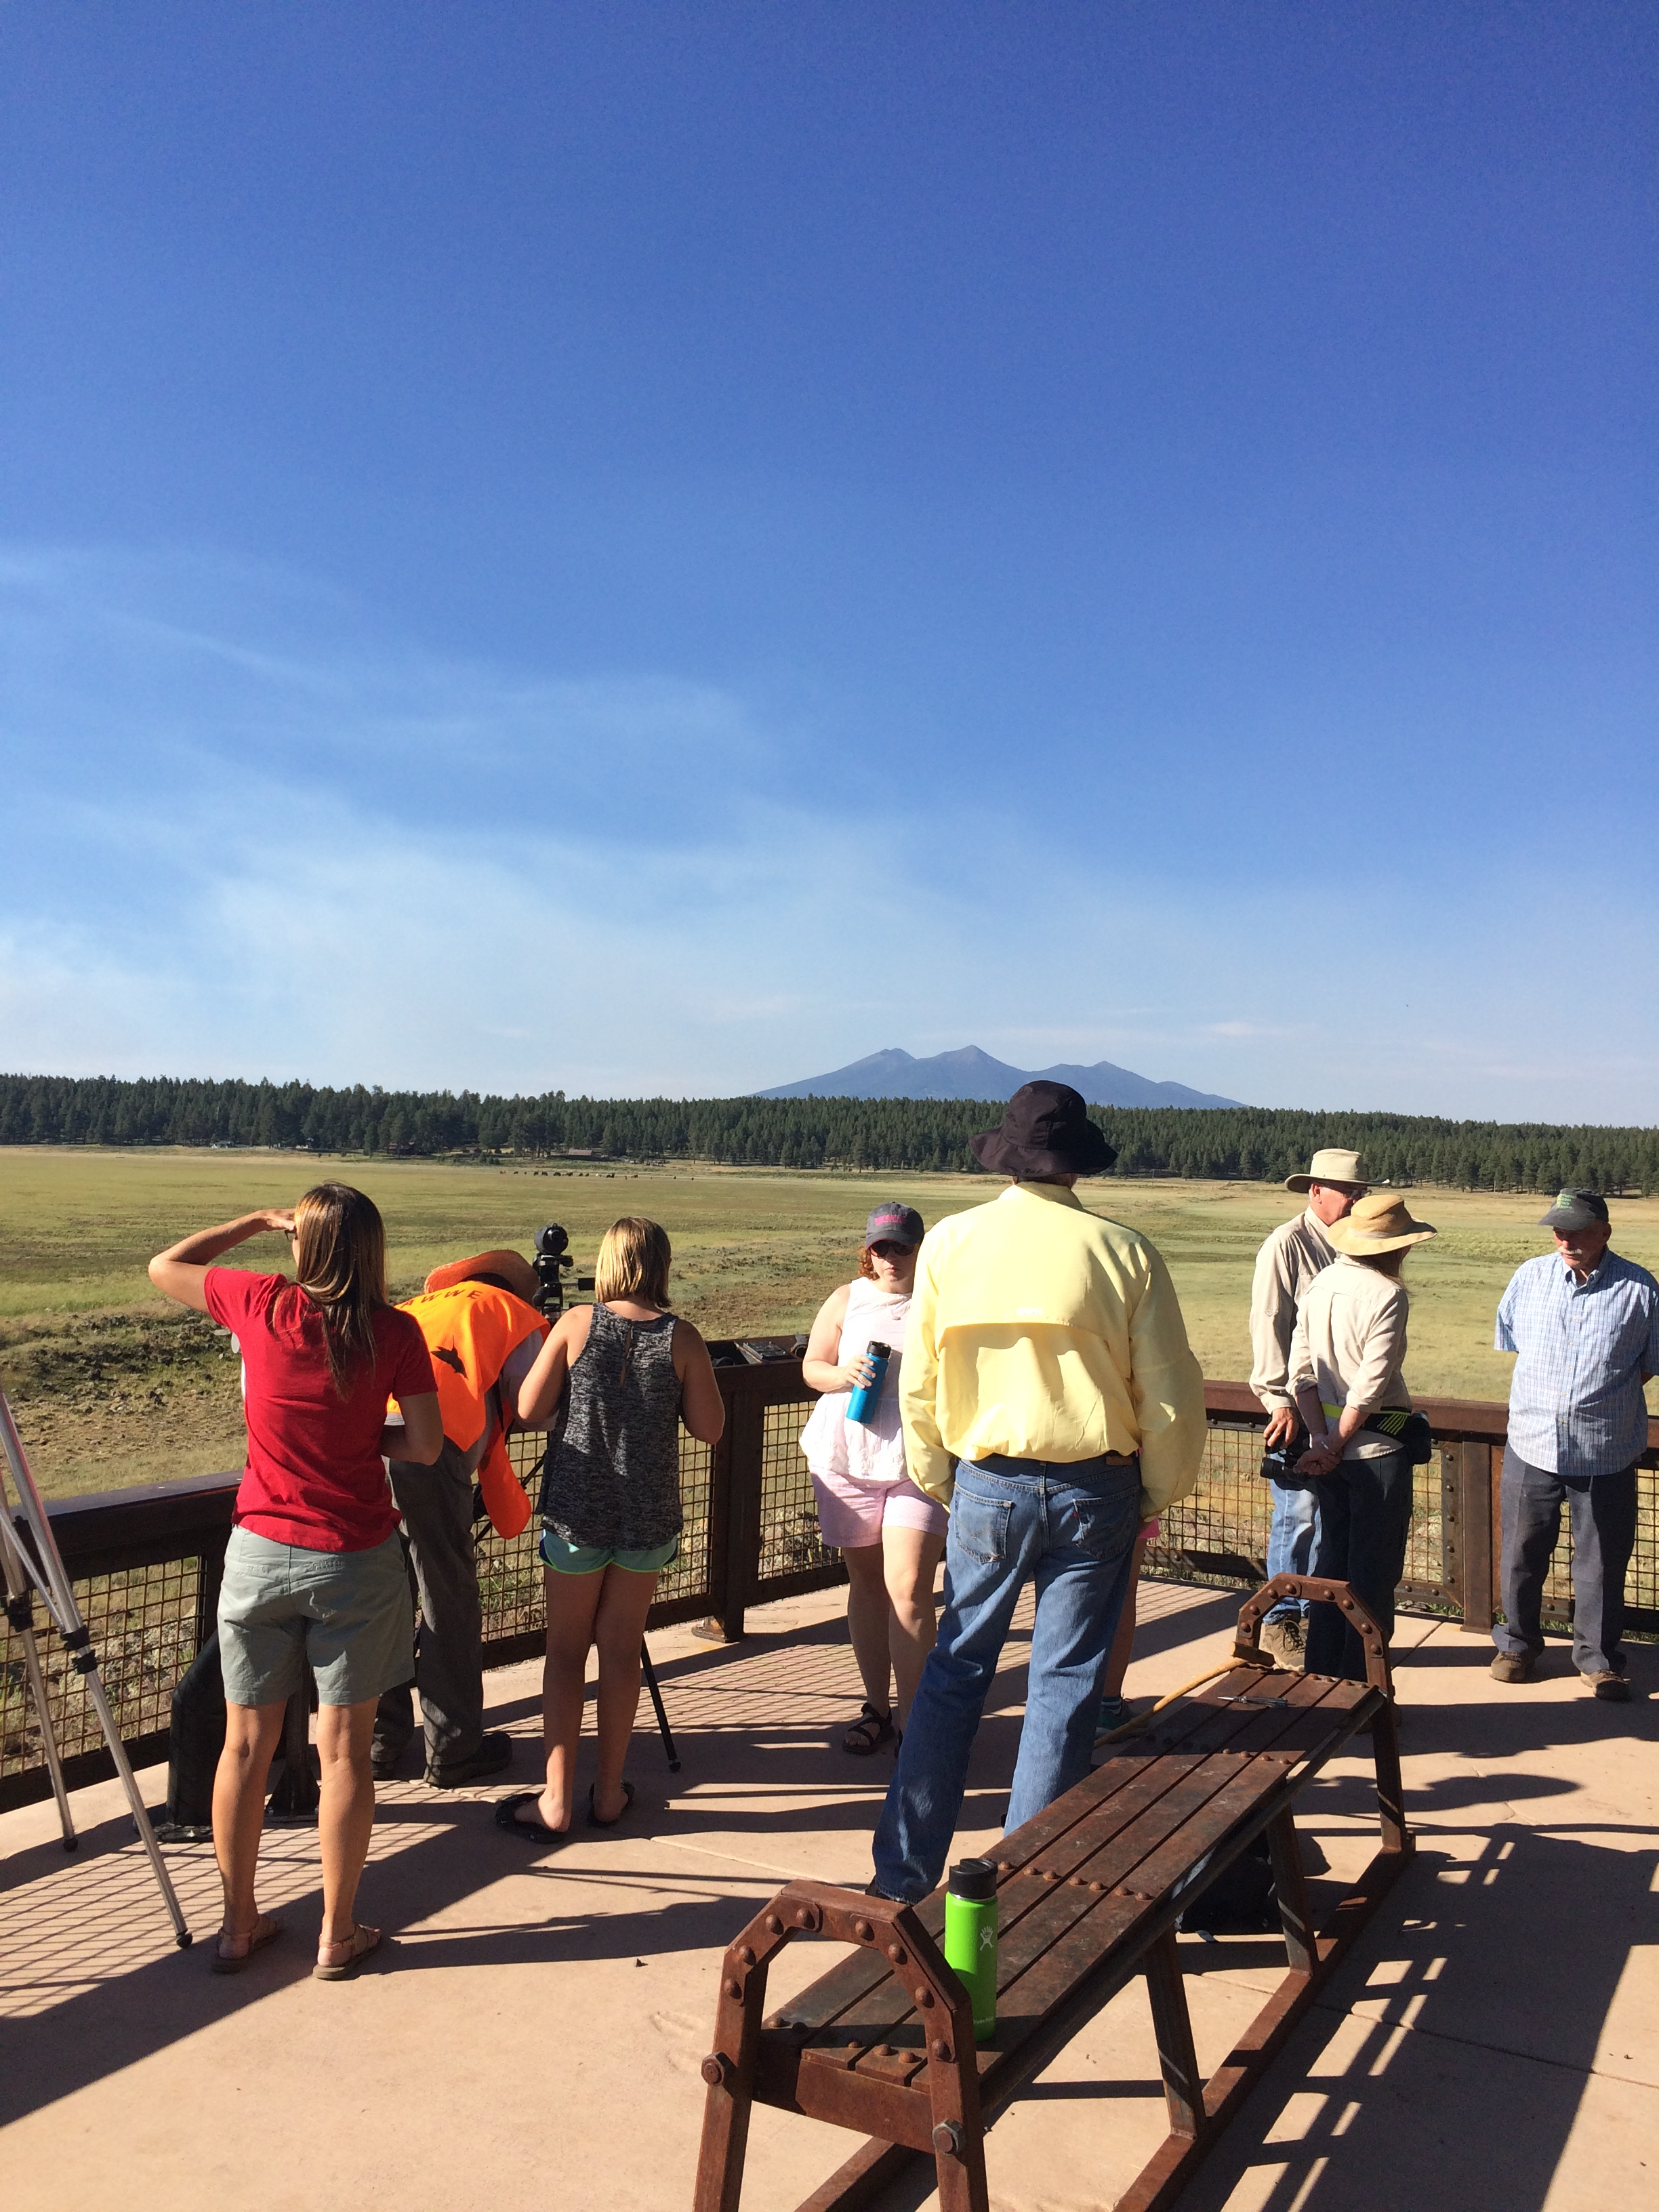 Visitors enjoy the watchable wildlife platform at Rogers Lake County Natural Area.